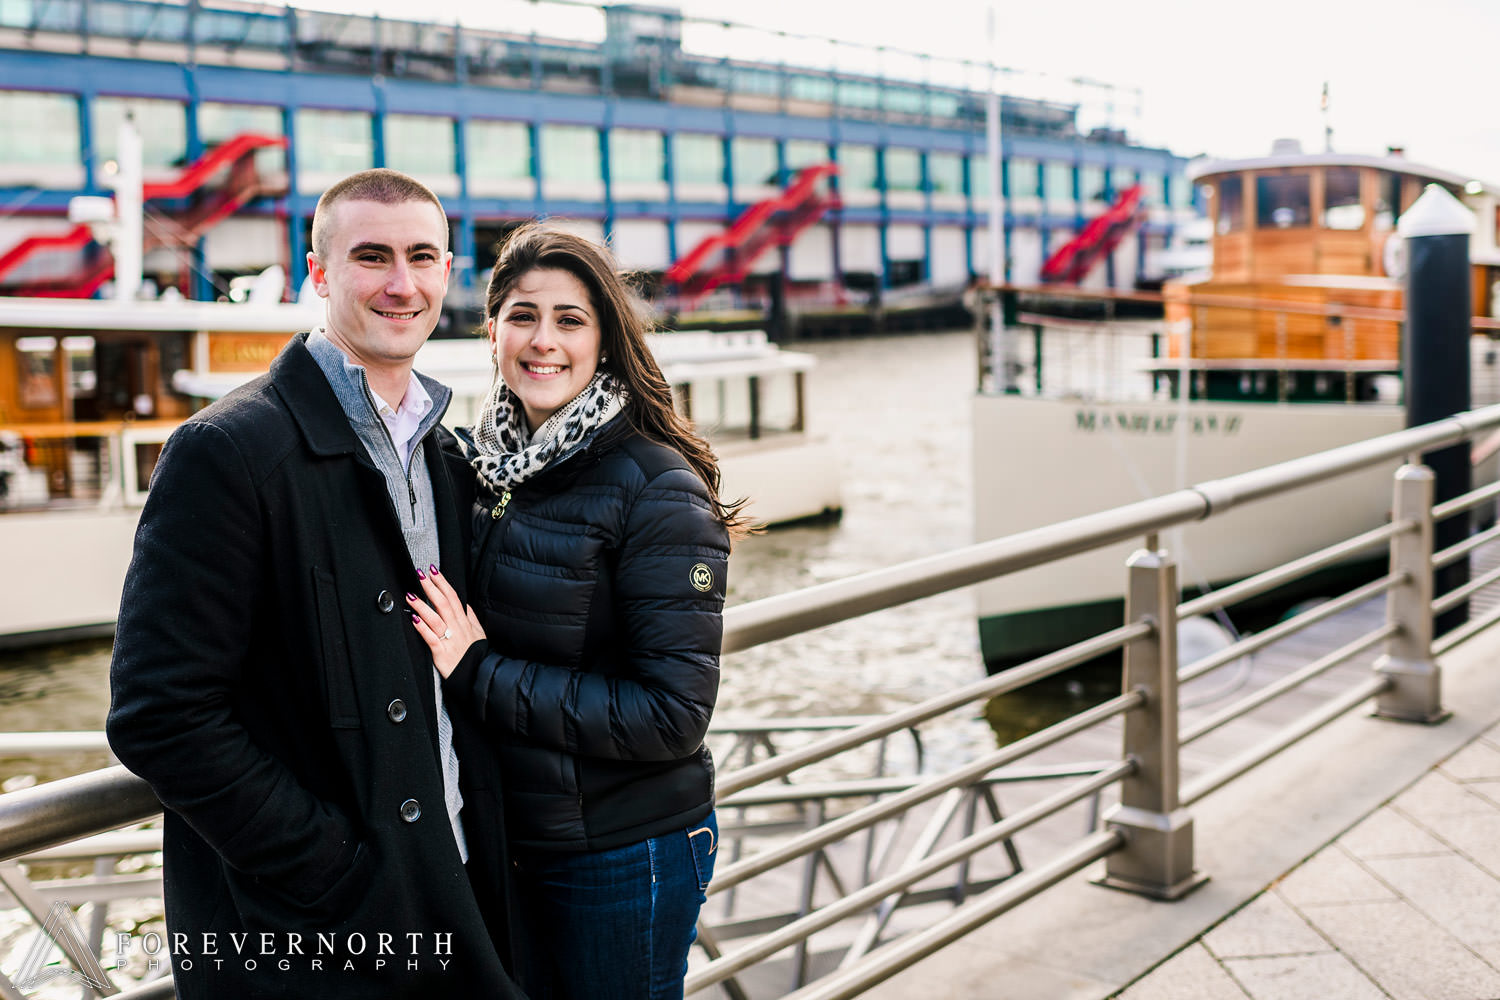 Cainero-Hudson-River-Park-Pier-62-New-York-Proposal-Engagement-Photographer-11.JPG